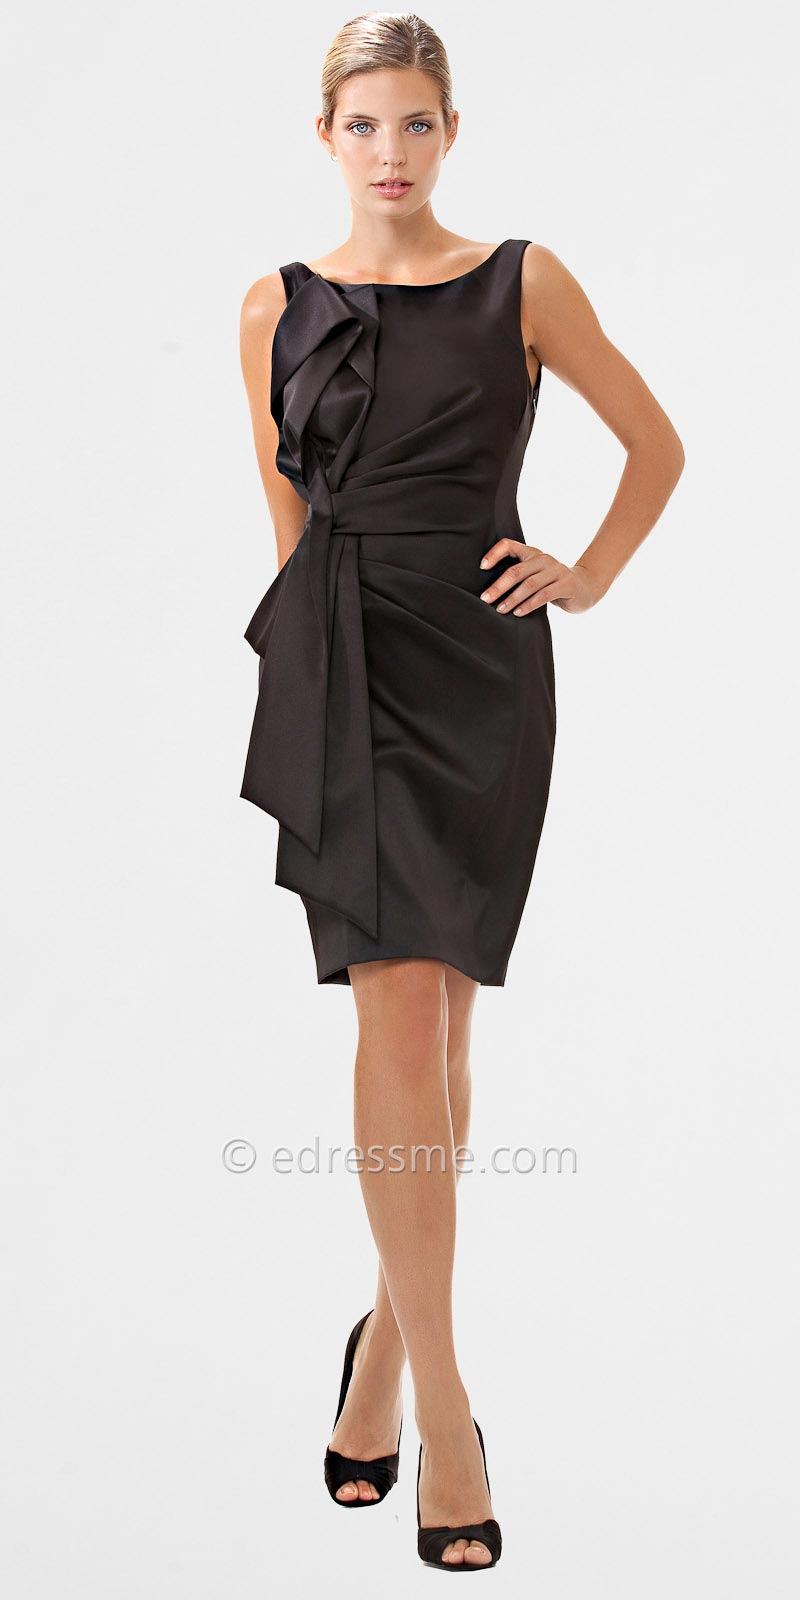 Black Cocktail Dress 2013 | Miss-24